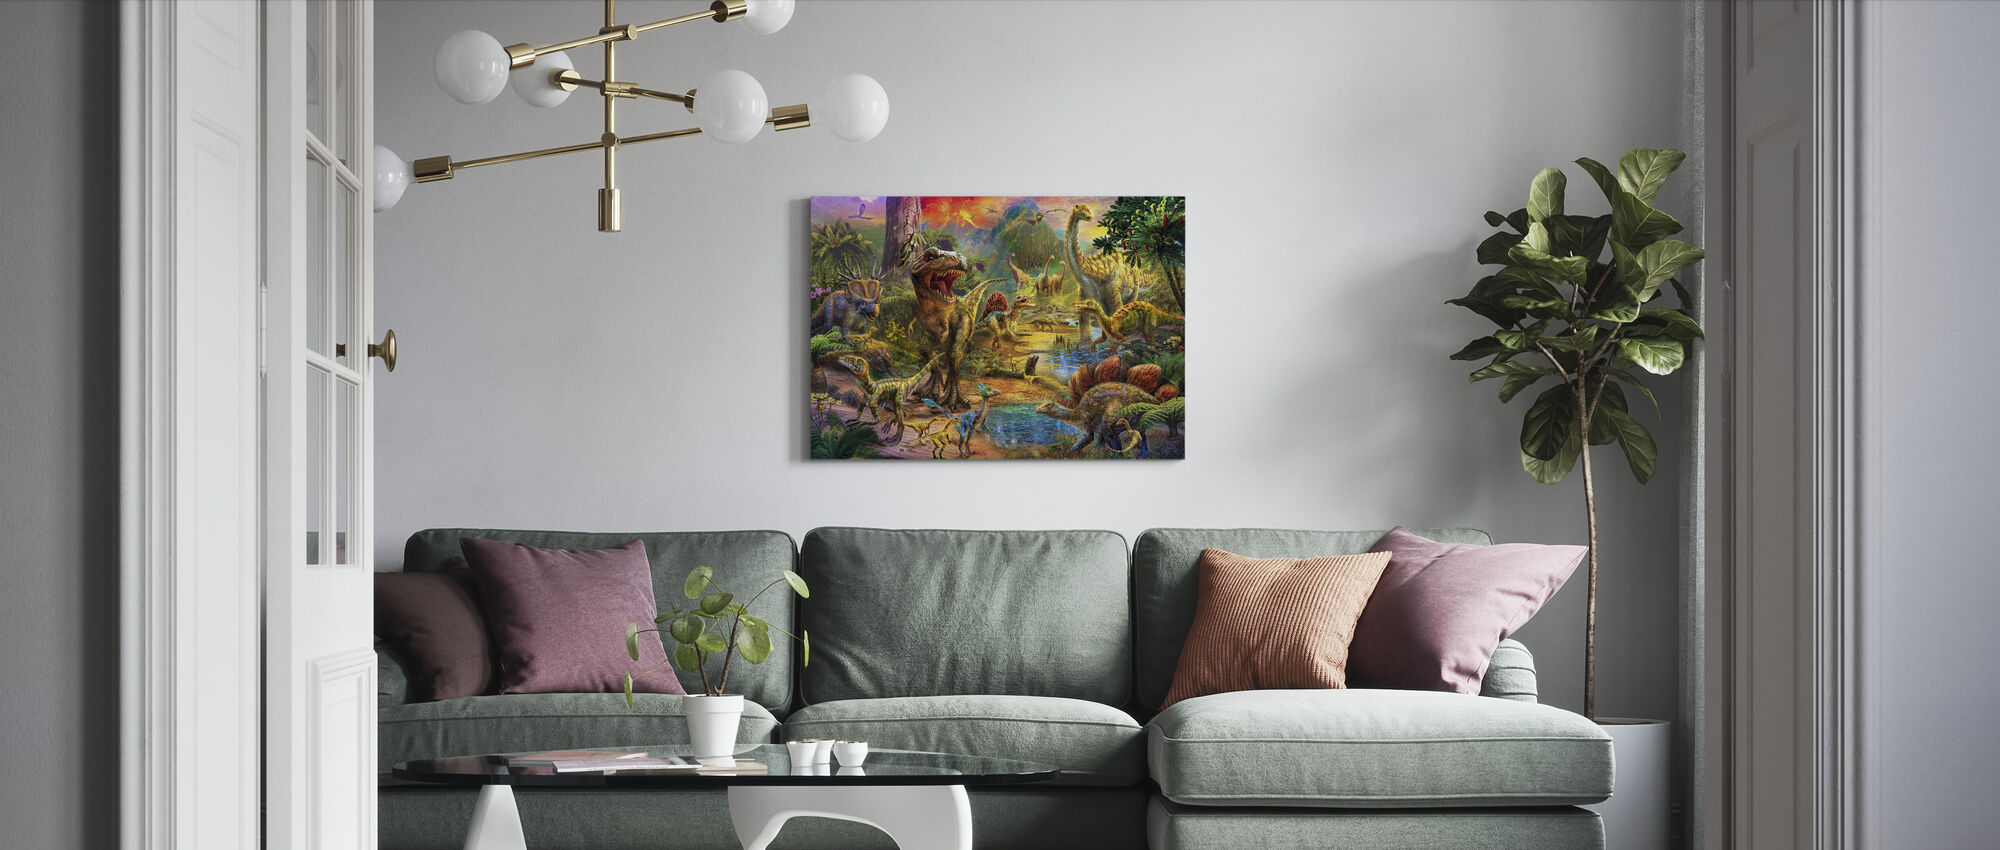 Landscape of Dinosaurs - Canvas print - Living Room